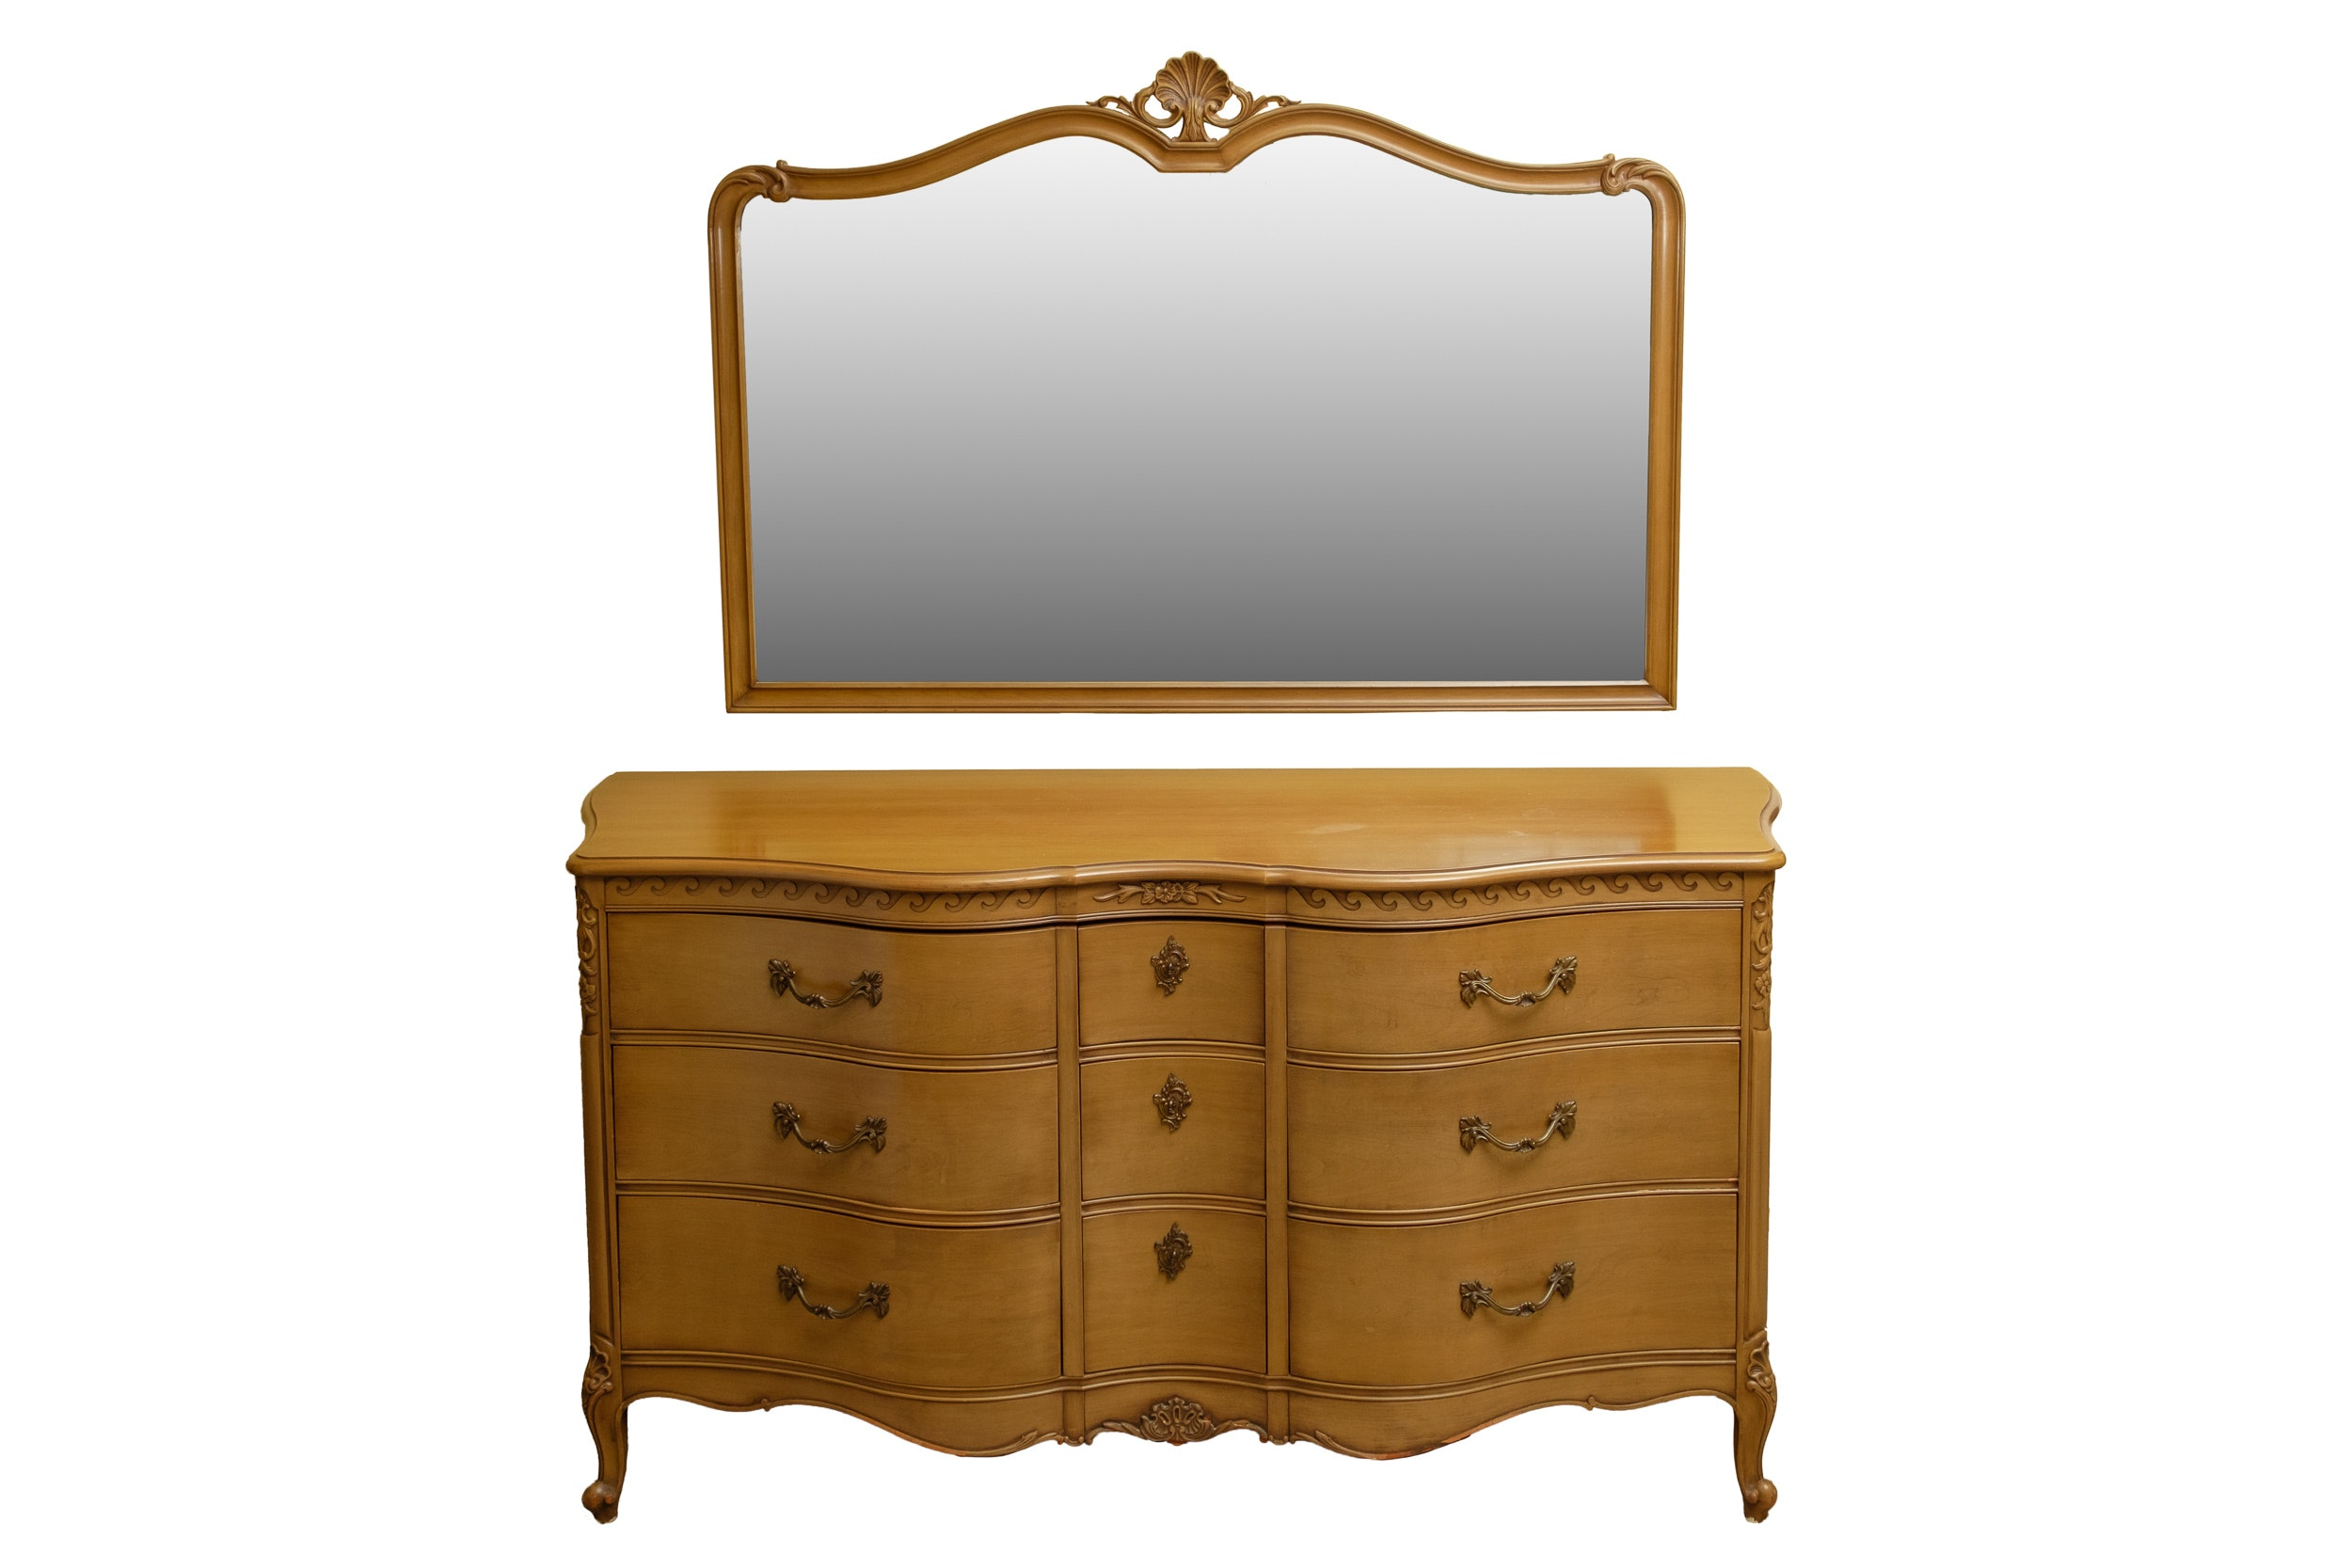 Vintage French Provincial Style Dresser by Drexel